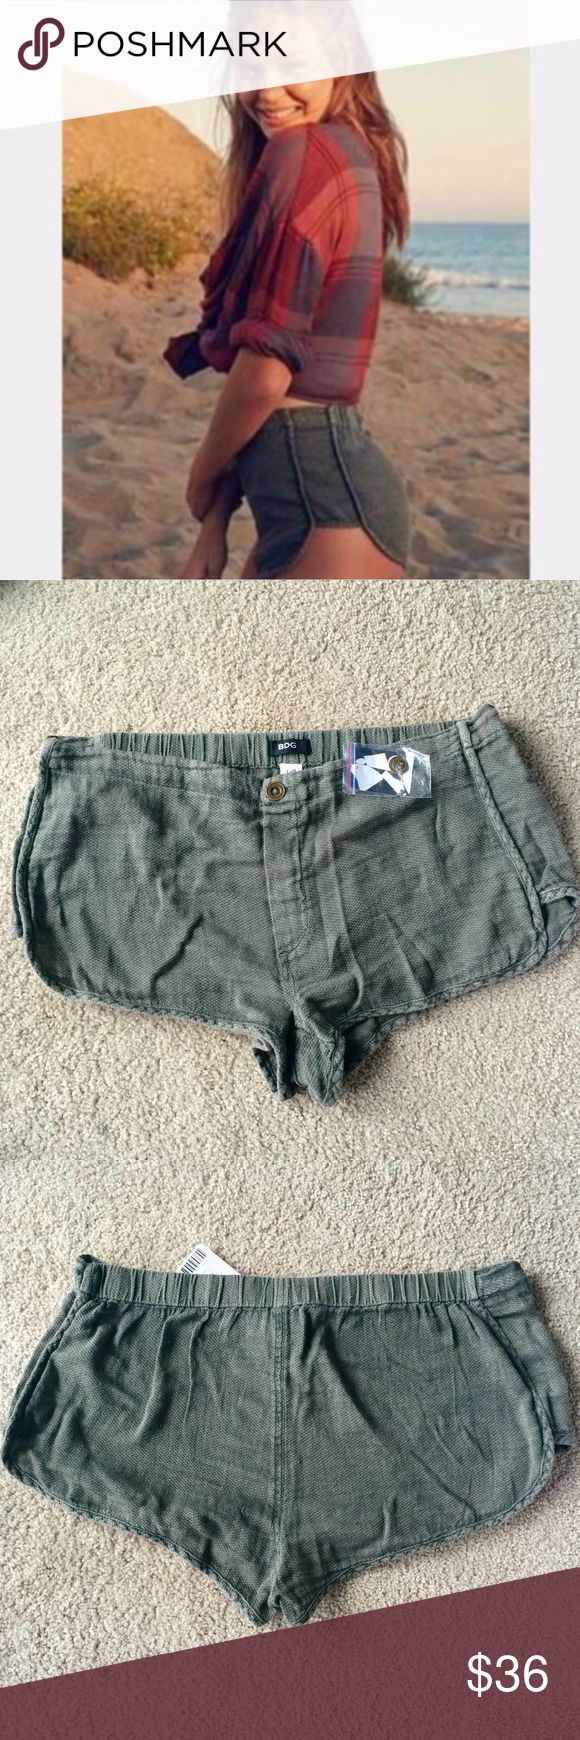 ❗️1 LEFT Urban Outfitters Olive Shorts NWT $39 ❗️1 LEFT Urban Outfitters Olive Shorts. NWT. Retails $39. Size large. Feel free to make an offer! New Year Cleanout Sale--I consider all reasonable offers on individual items & bundles. Current bundle deal ends today!;-) Urban Outfitters Shorts